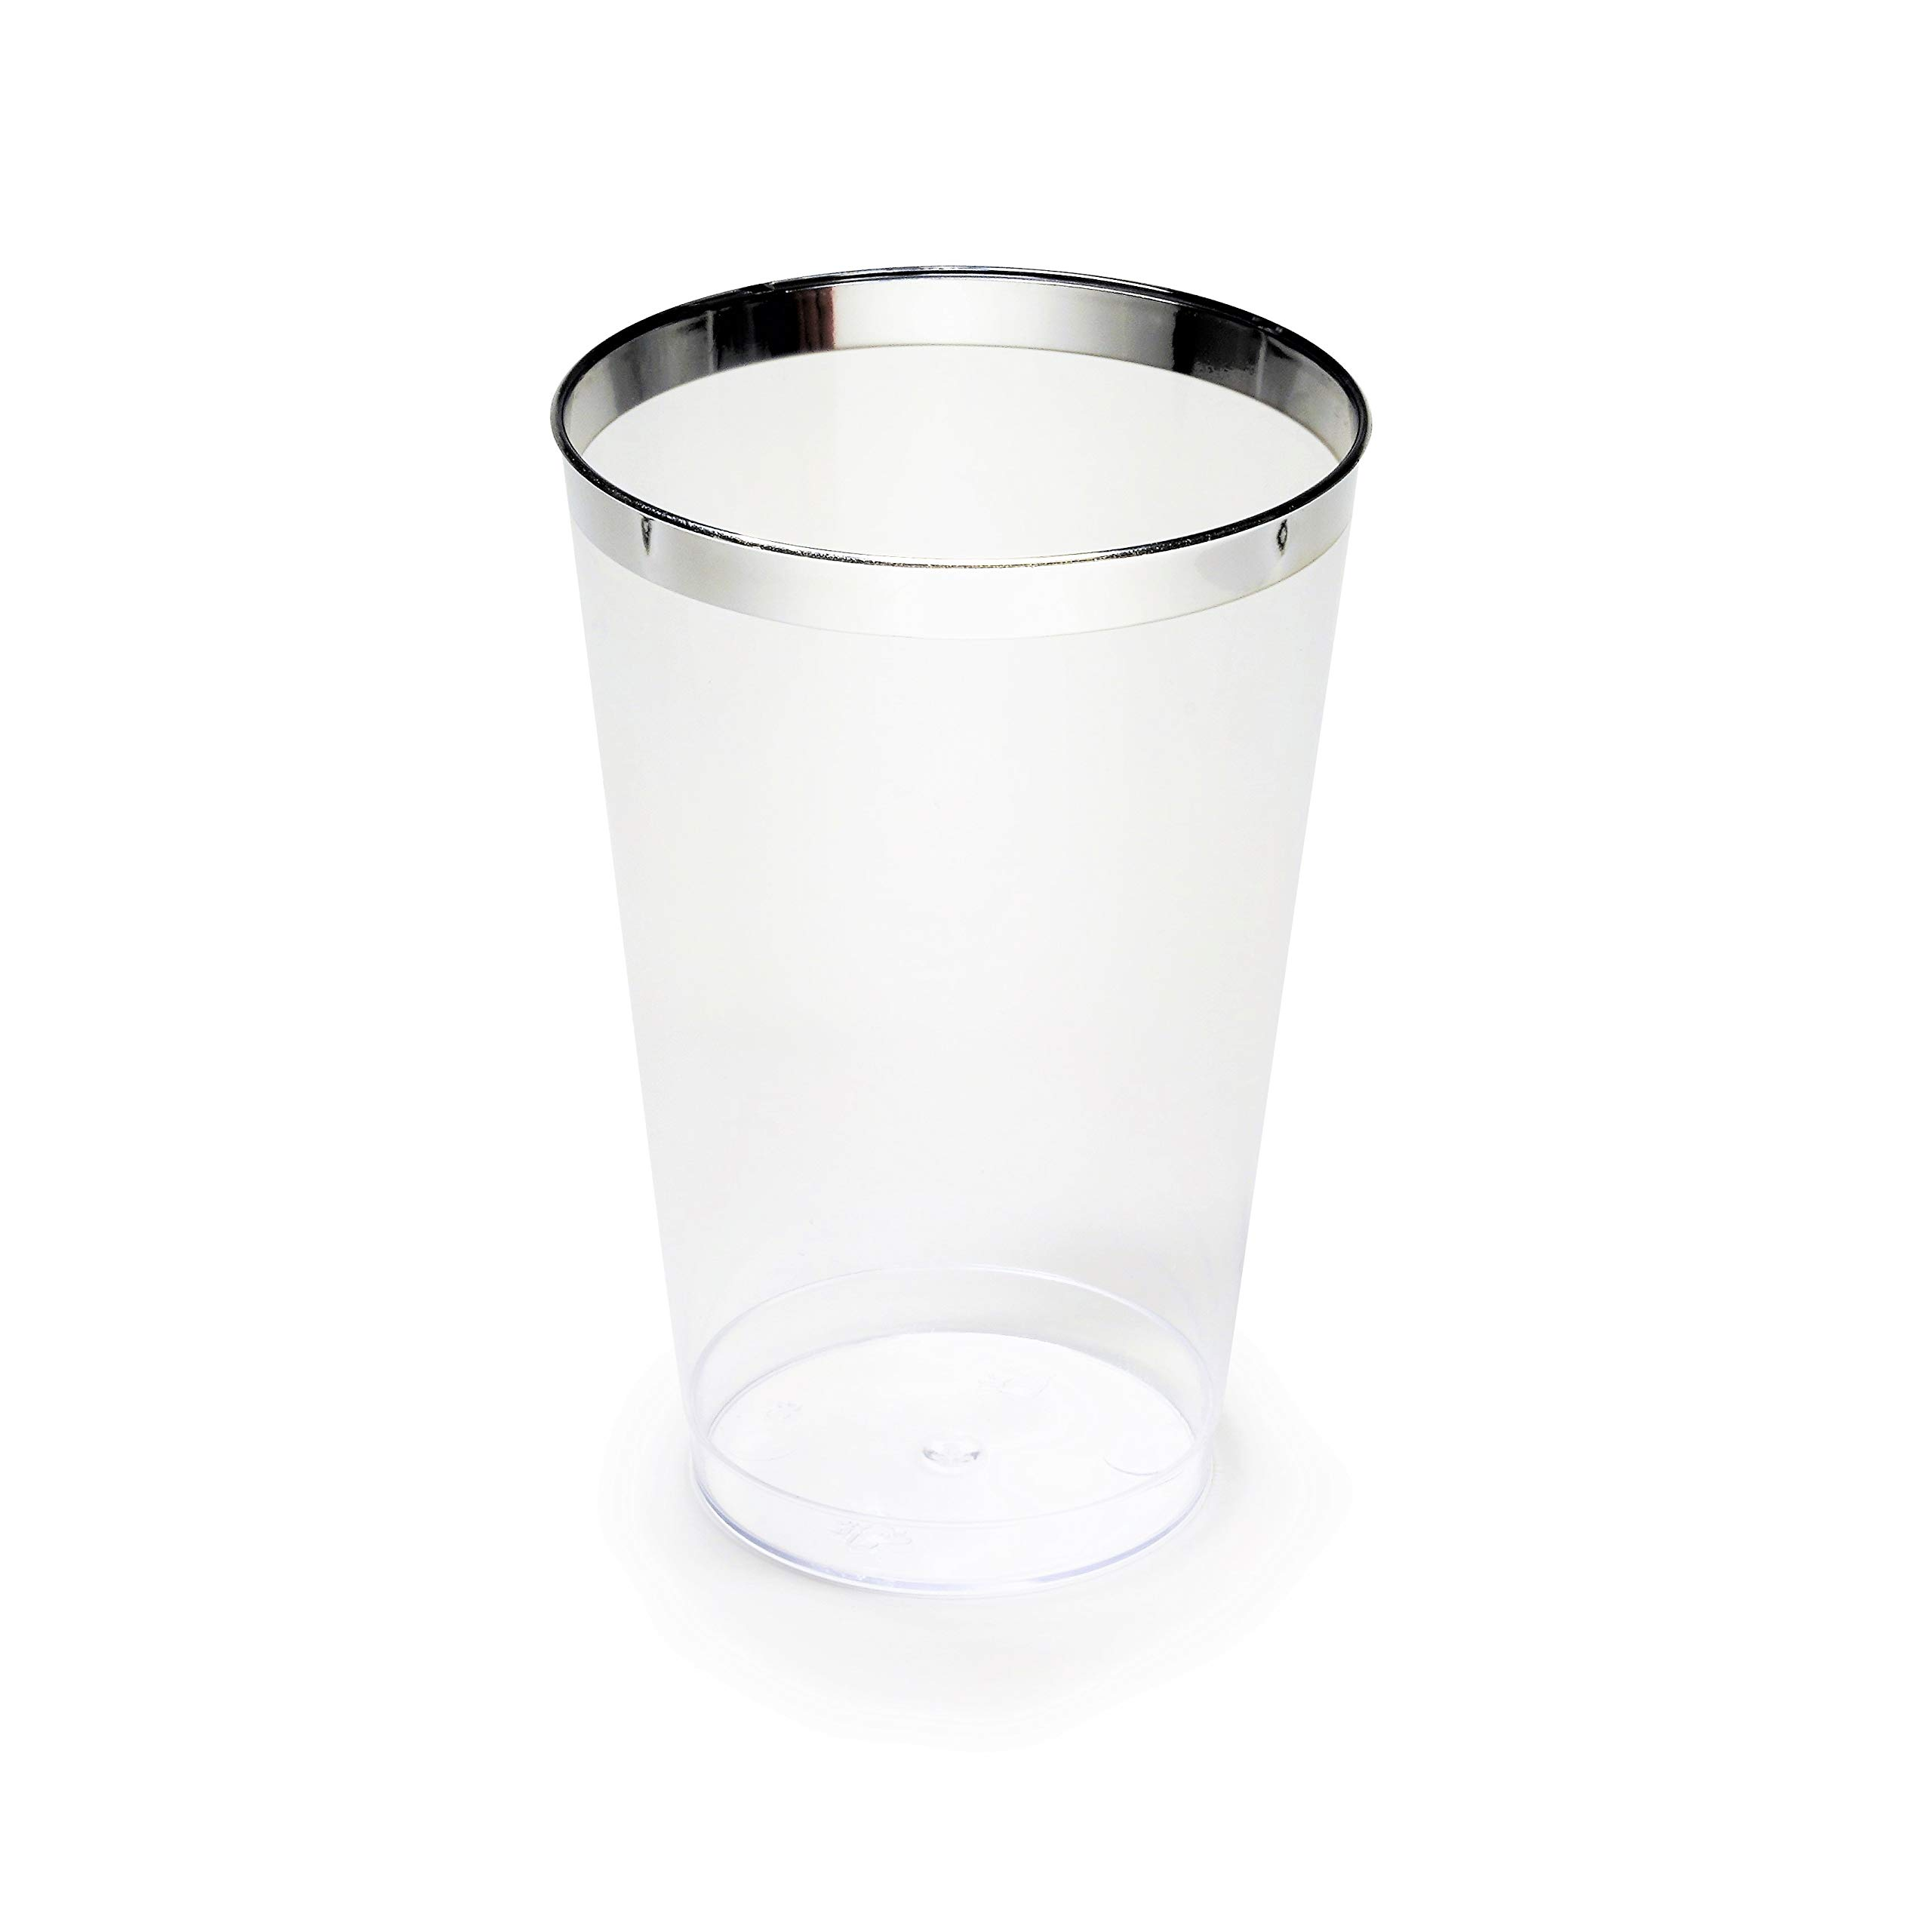 OCCASIONS Wedding Party Disposable Plastic Tumbler Cups (Silver Rimmed, 14 Oz Tumbler, 100 pcs)